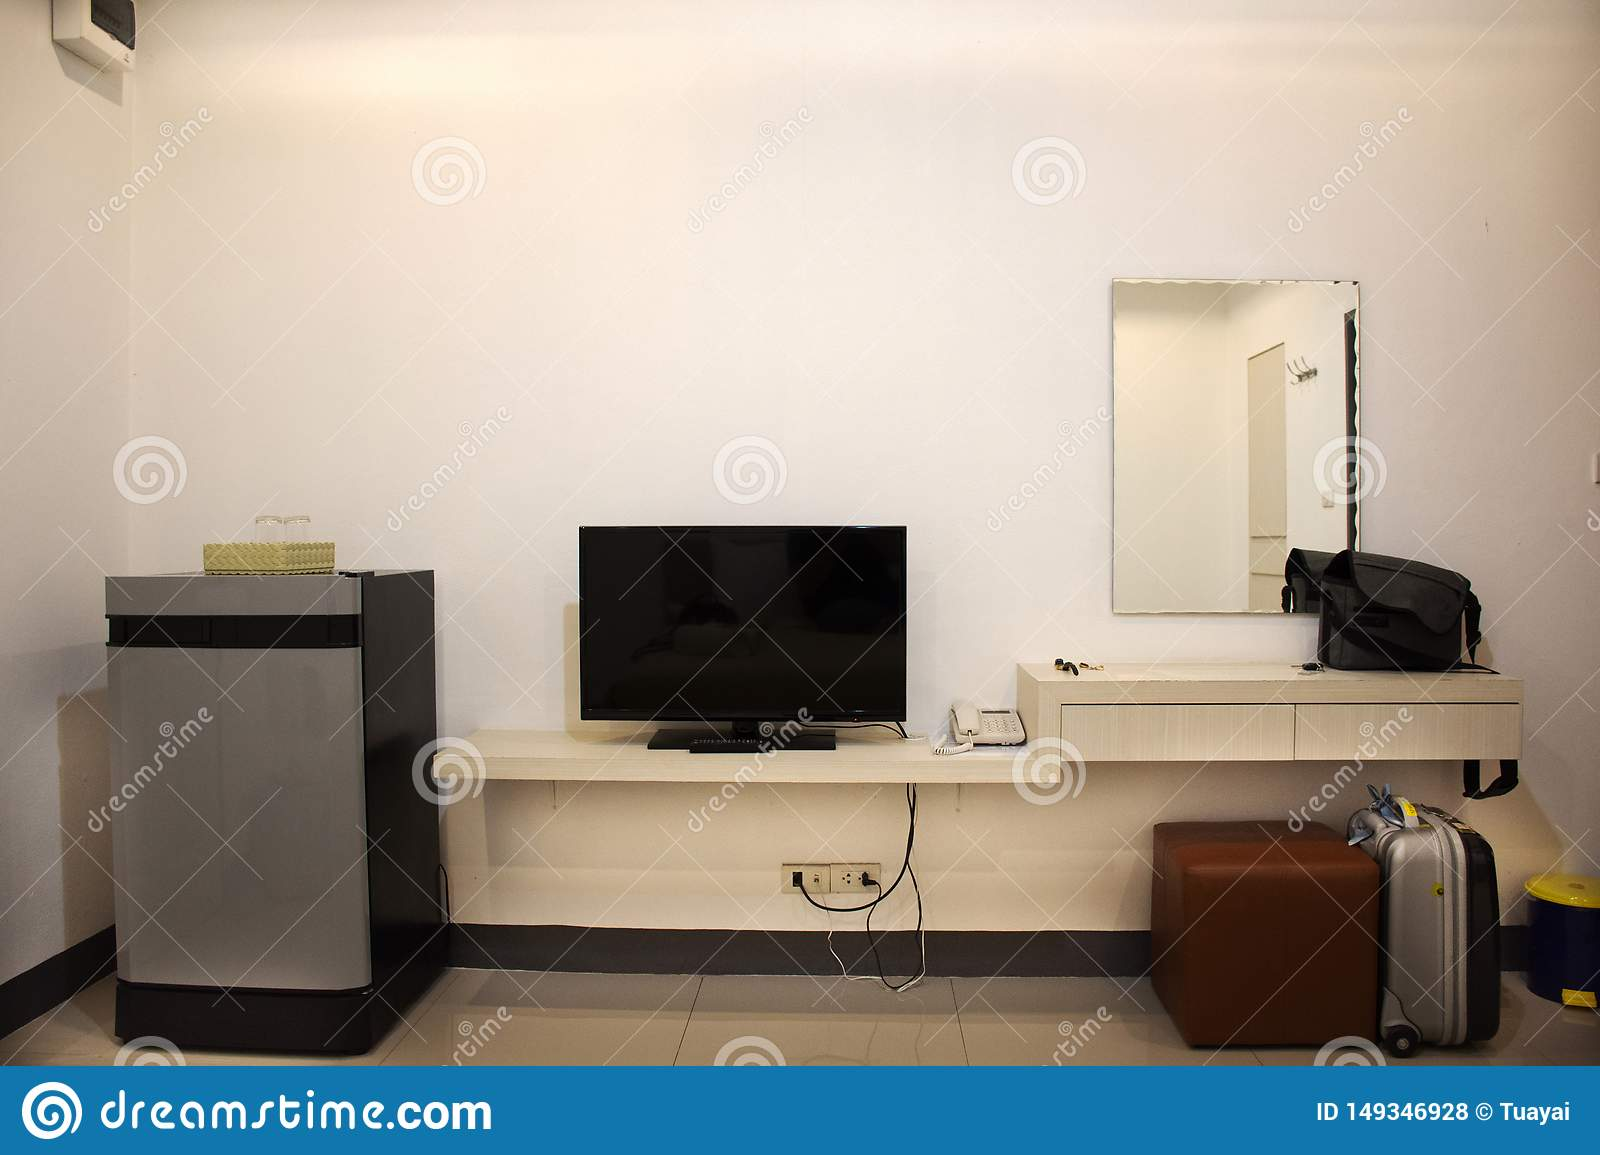 Decoration furniture and interior design of resort apartment for thai people rent and rest in Udon Thani, Thailand